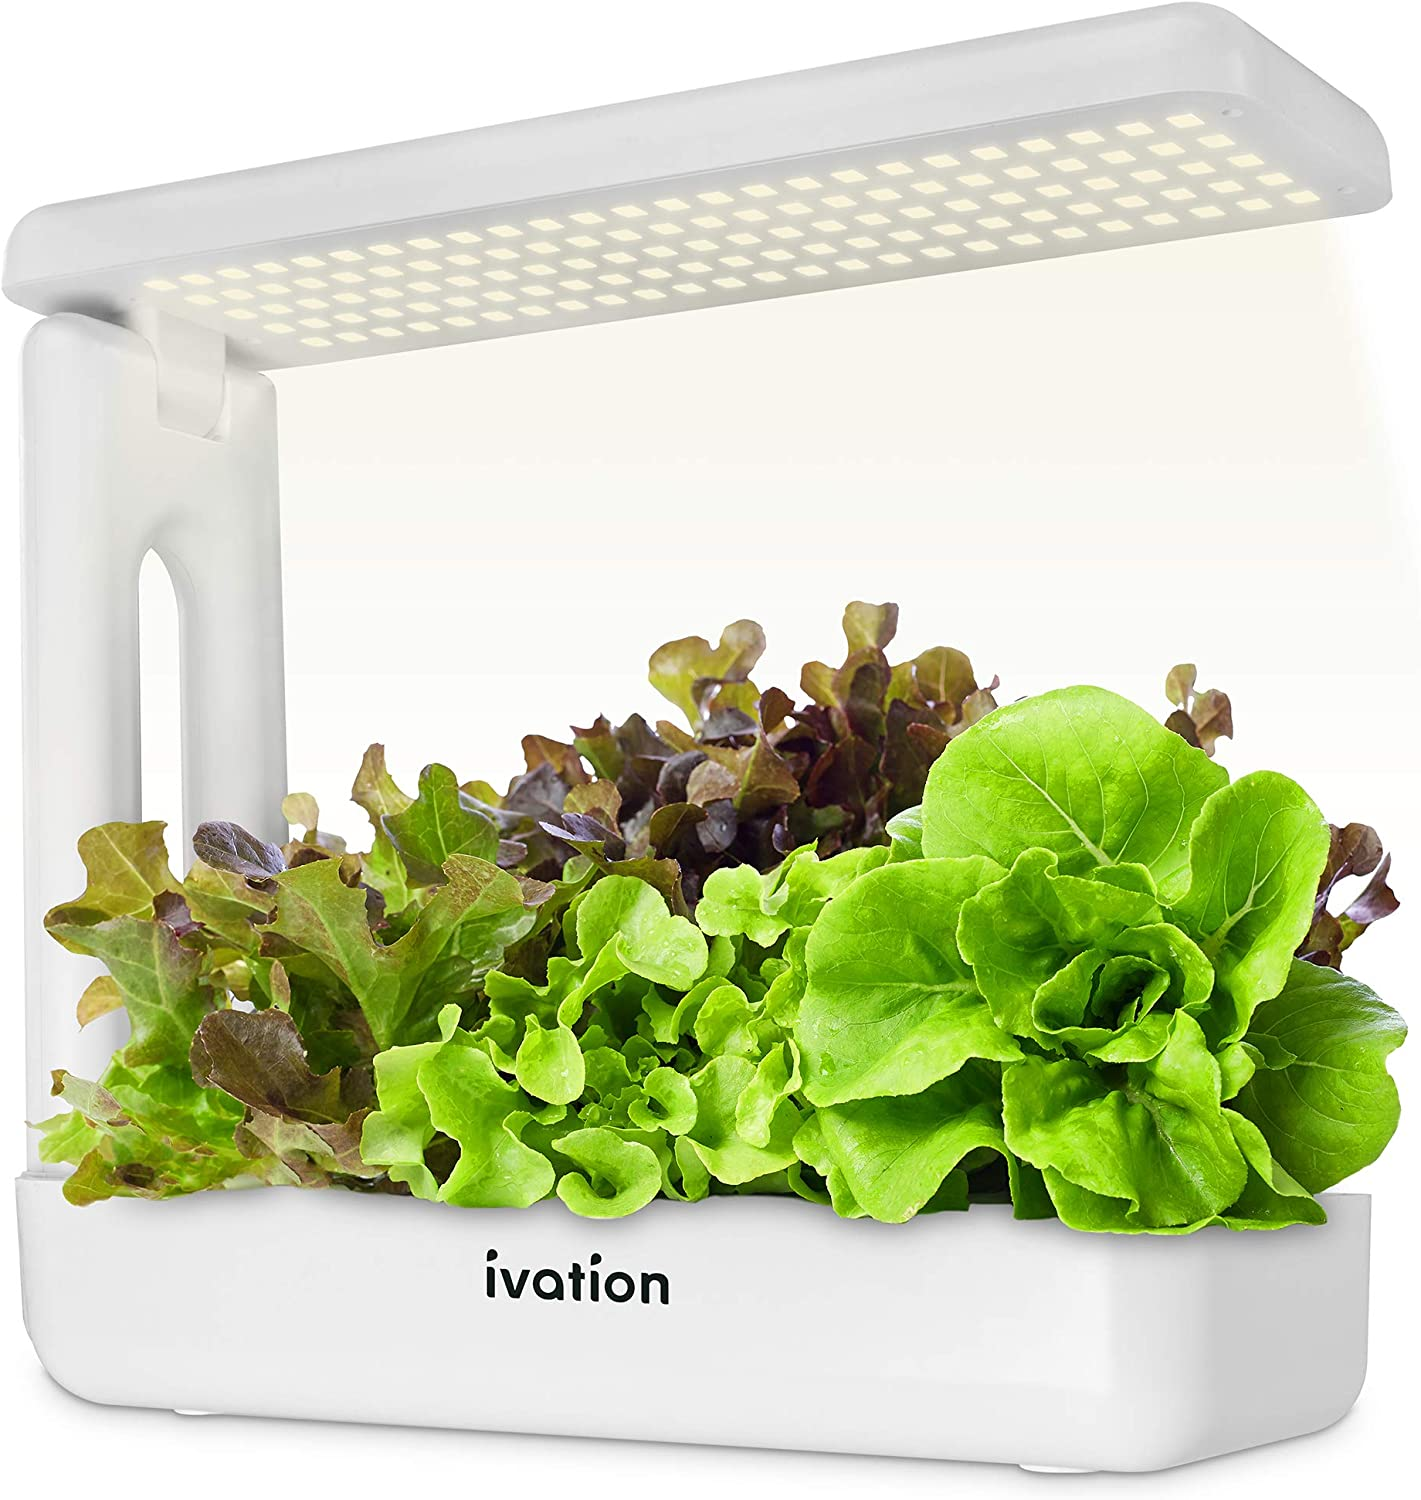 Ivation Herb Indoor Garden Kit Complete Hydroponic Grow System For Herbs Plants Vegetables With Led Light Seeding Box Sponge Cubes Planting Pods Hats Nutrients Tweezers Just